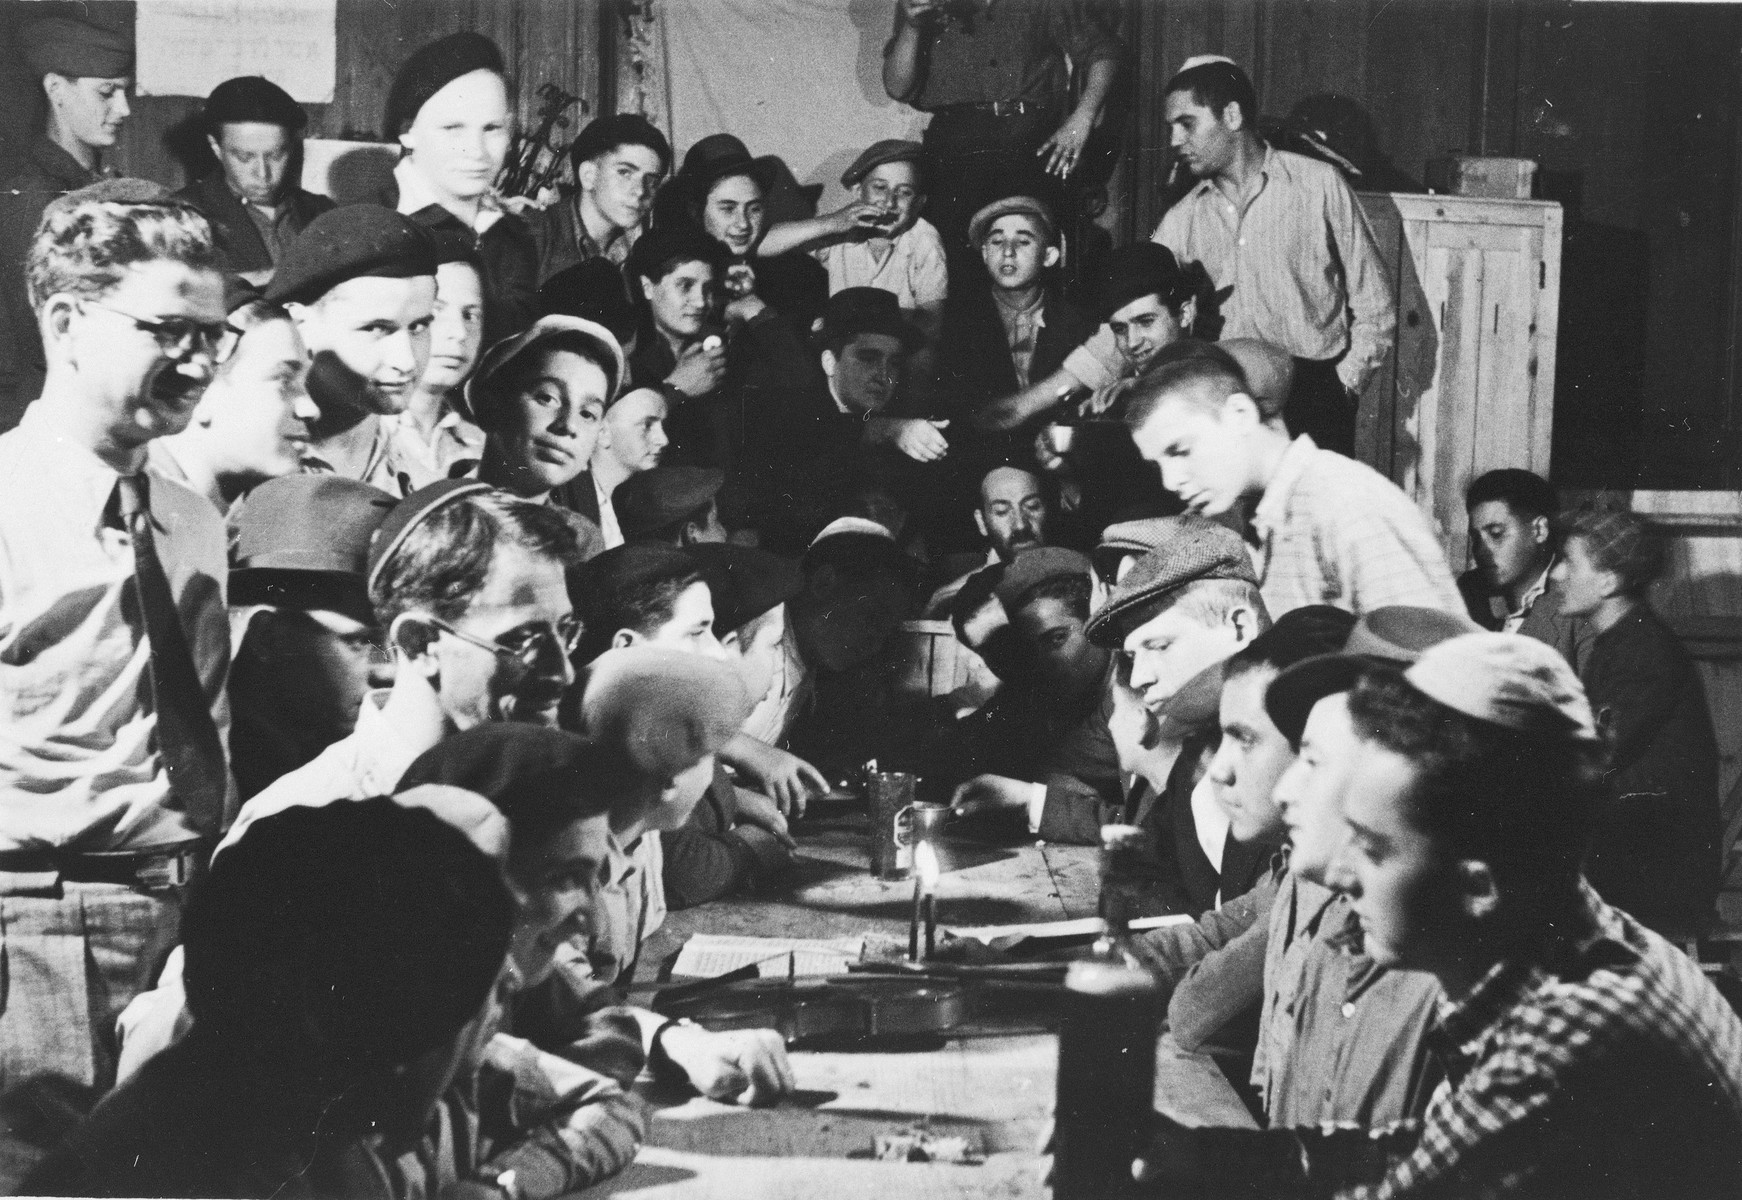 Jewish DP youth who numbered among the Buchenwald children, are gathered around a table at an OSE (Oeuvre de Secours aux Enfants) children's home in France [either in Ambloy or Taverny].